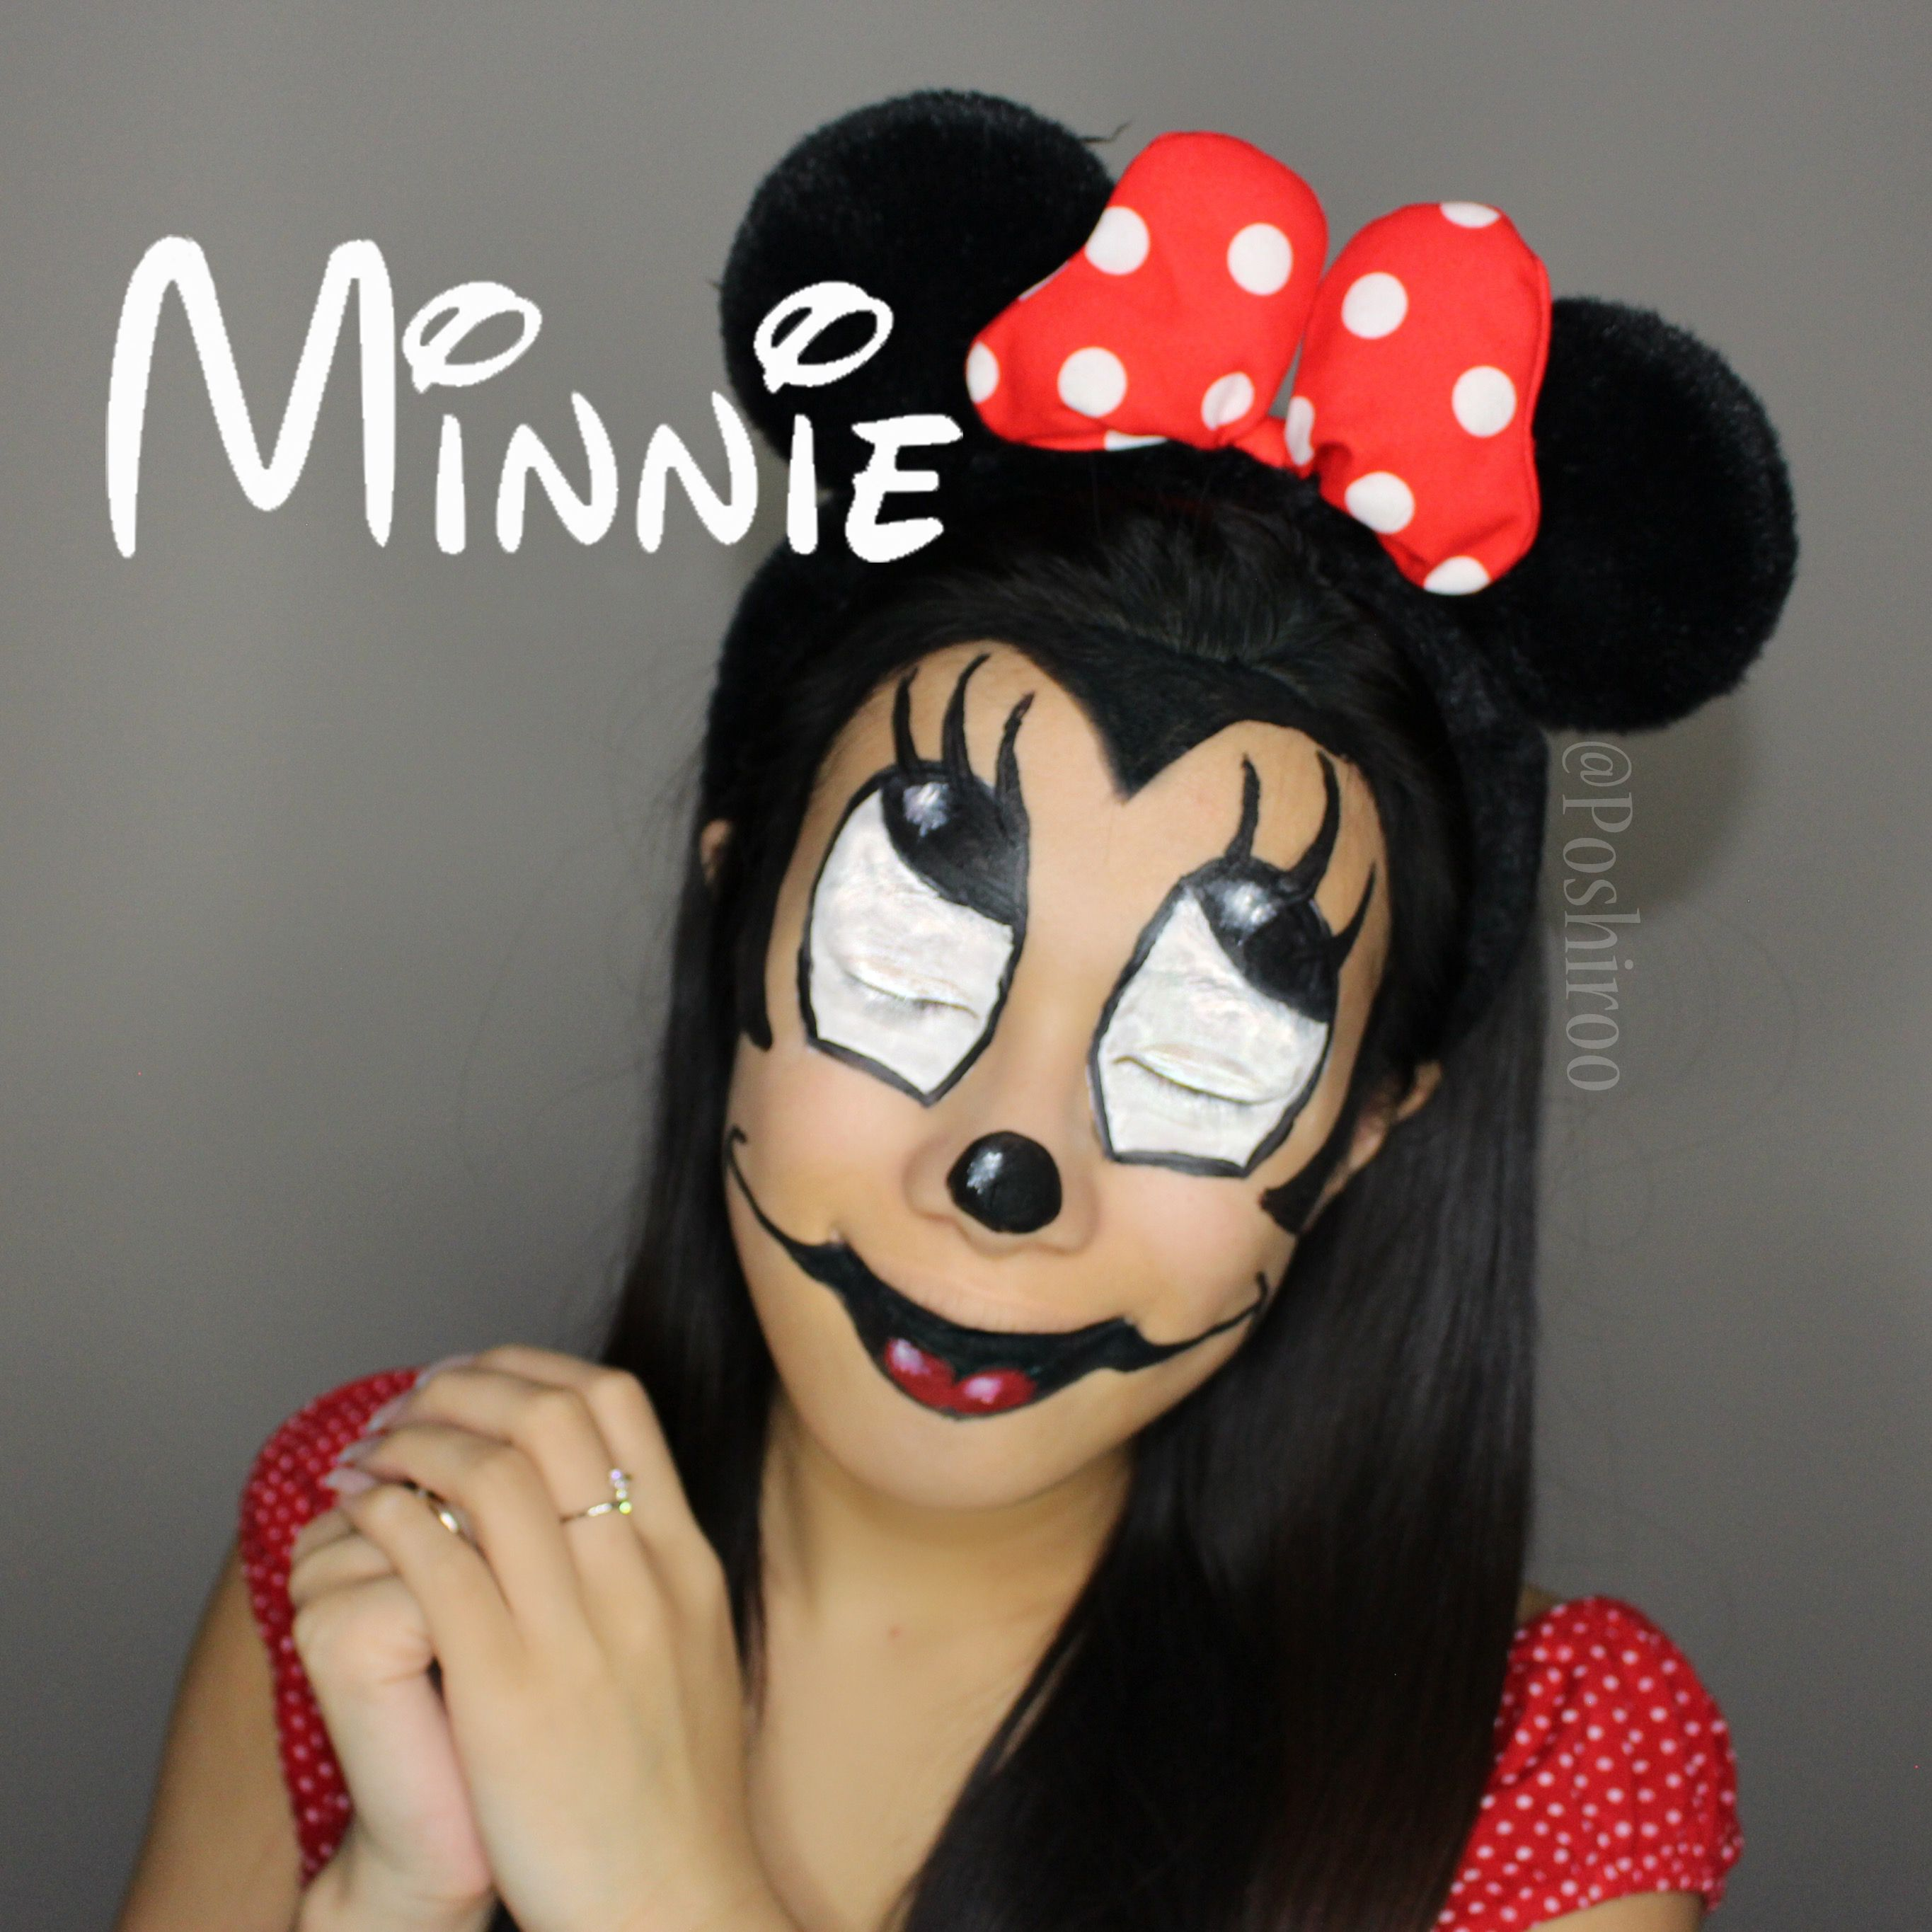 Scary Minnie Mouse Diy Makeup Tutorial Step By Easy Creepy Disney Mickey Costume For S Kids Women Poshiroo